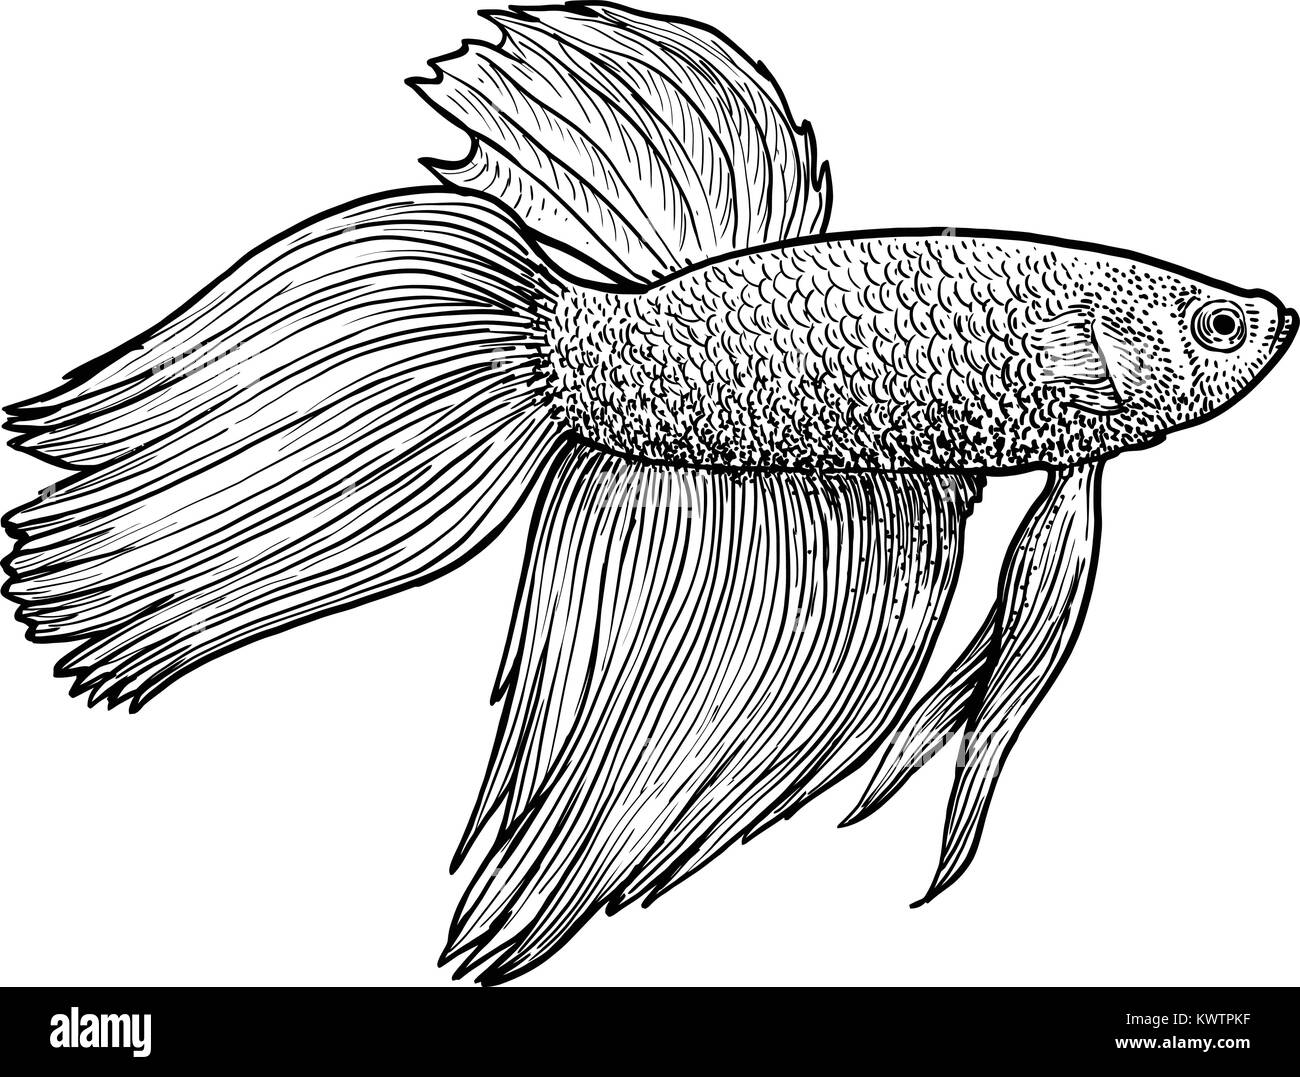 Fish Drawing High Resolution Stock Photography And Images Alamy